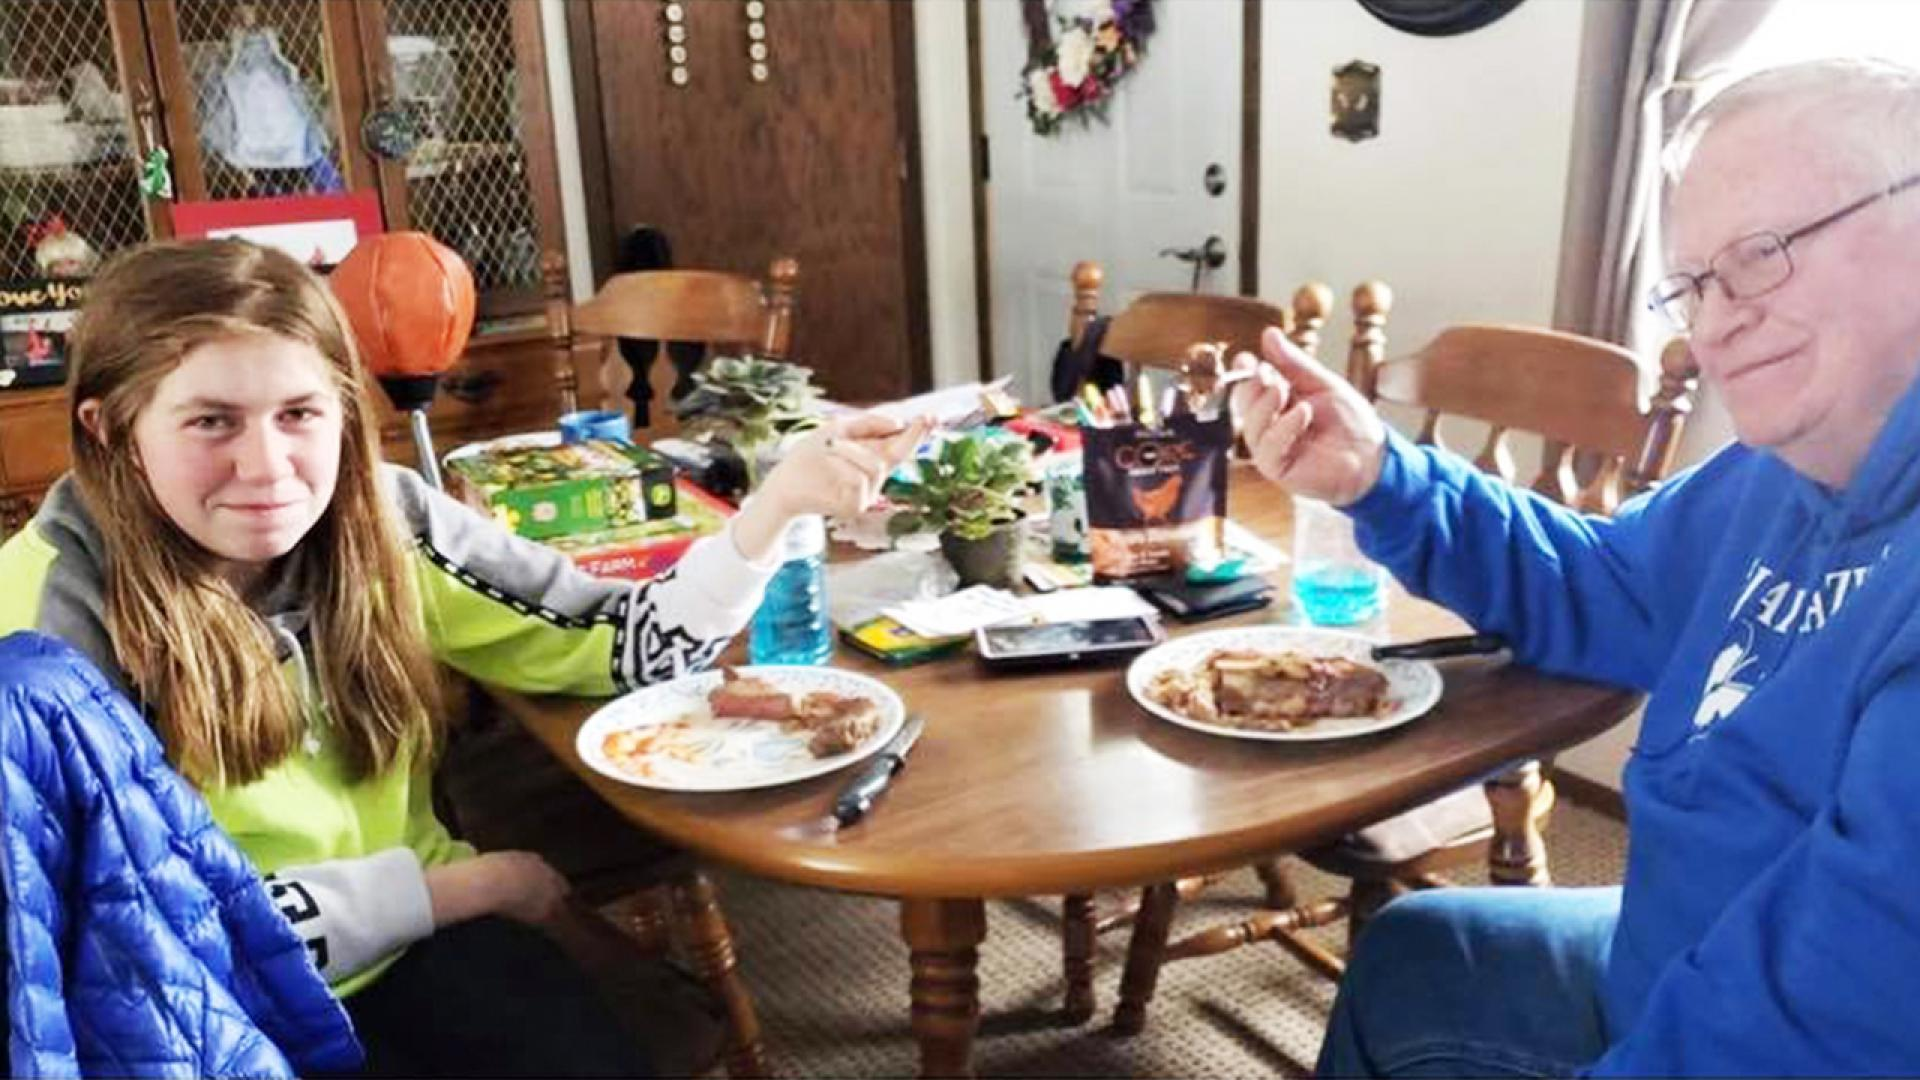 Jayme Closs grins while enjoying a steak lunch with her grandfather.